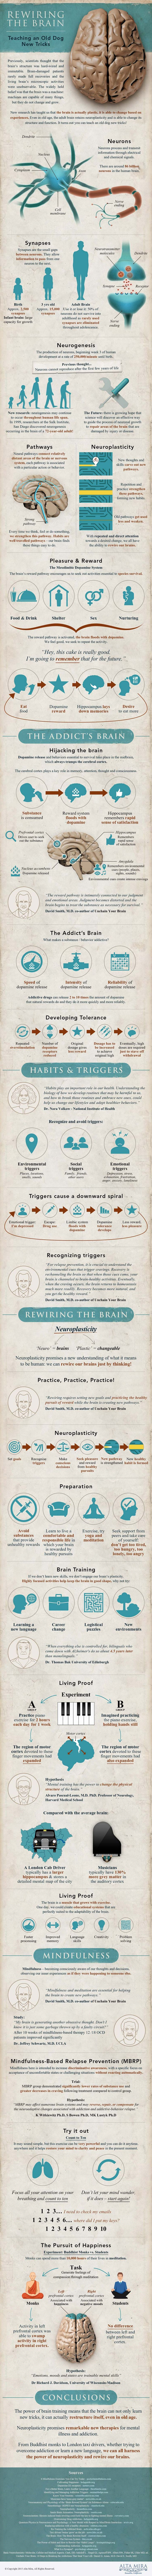 The Brain That Heals Itself: Neuroplasticity and Promise for Addiction Treatment - Alta Mira